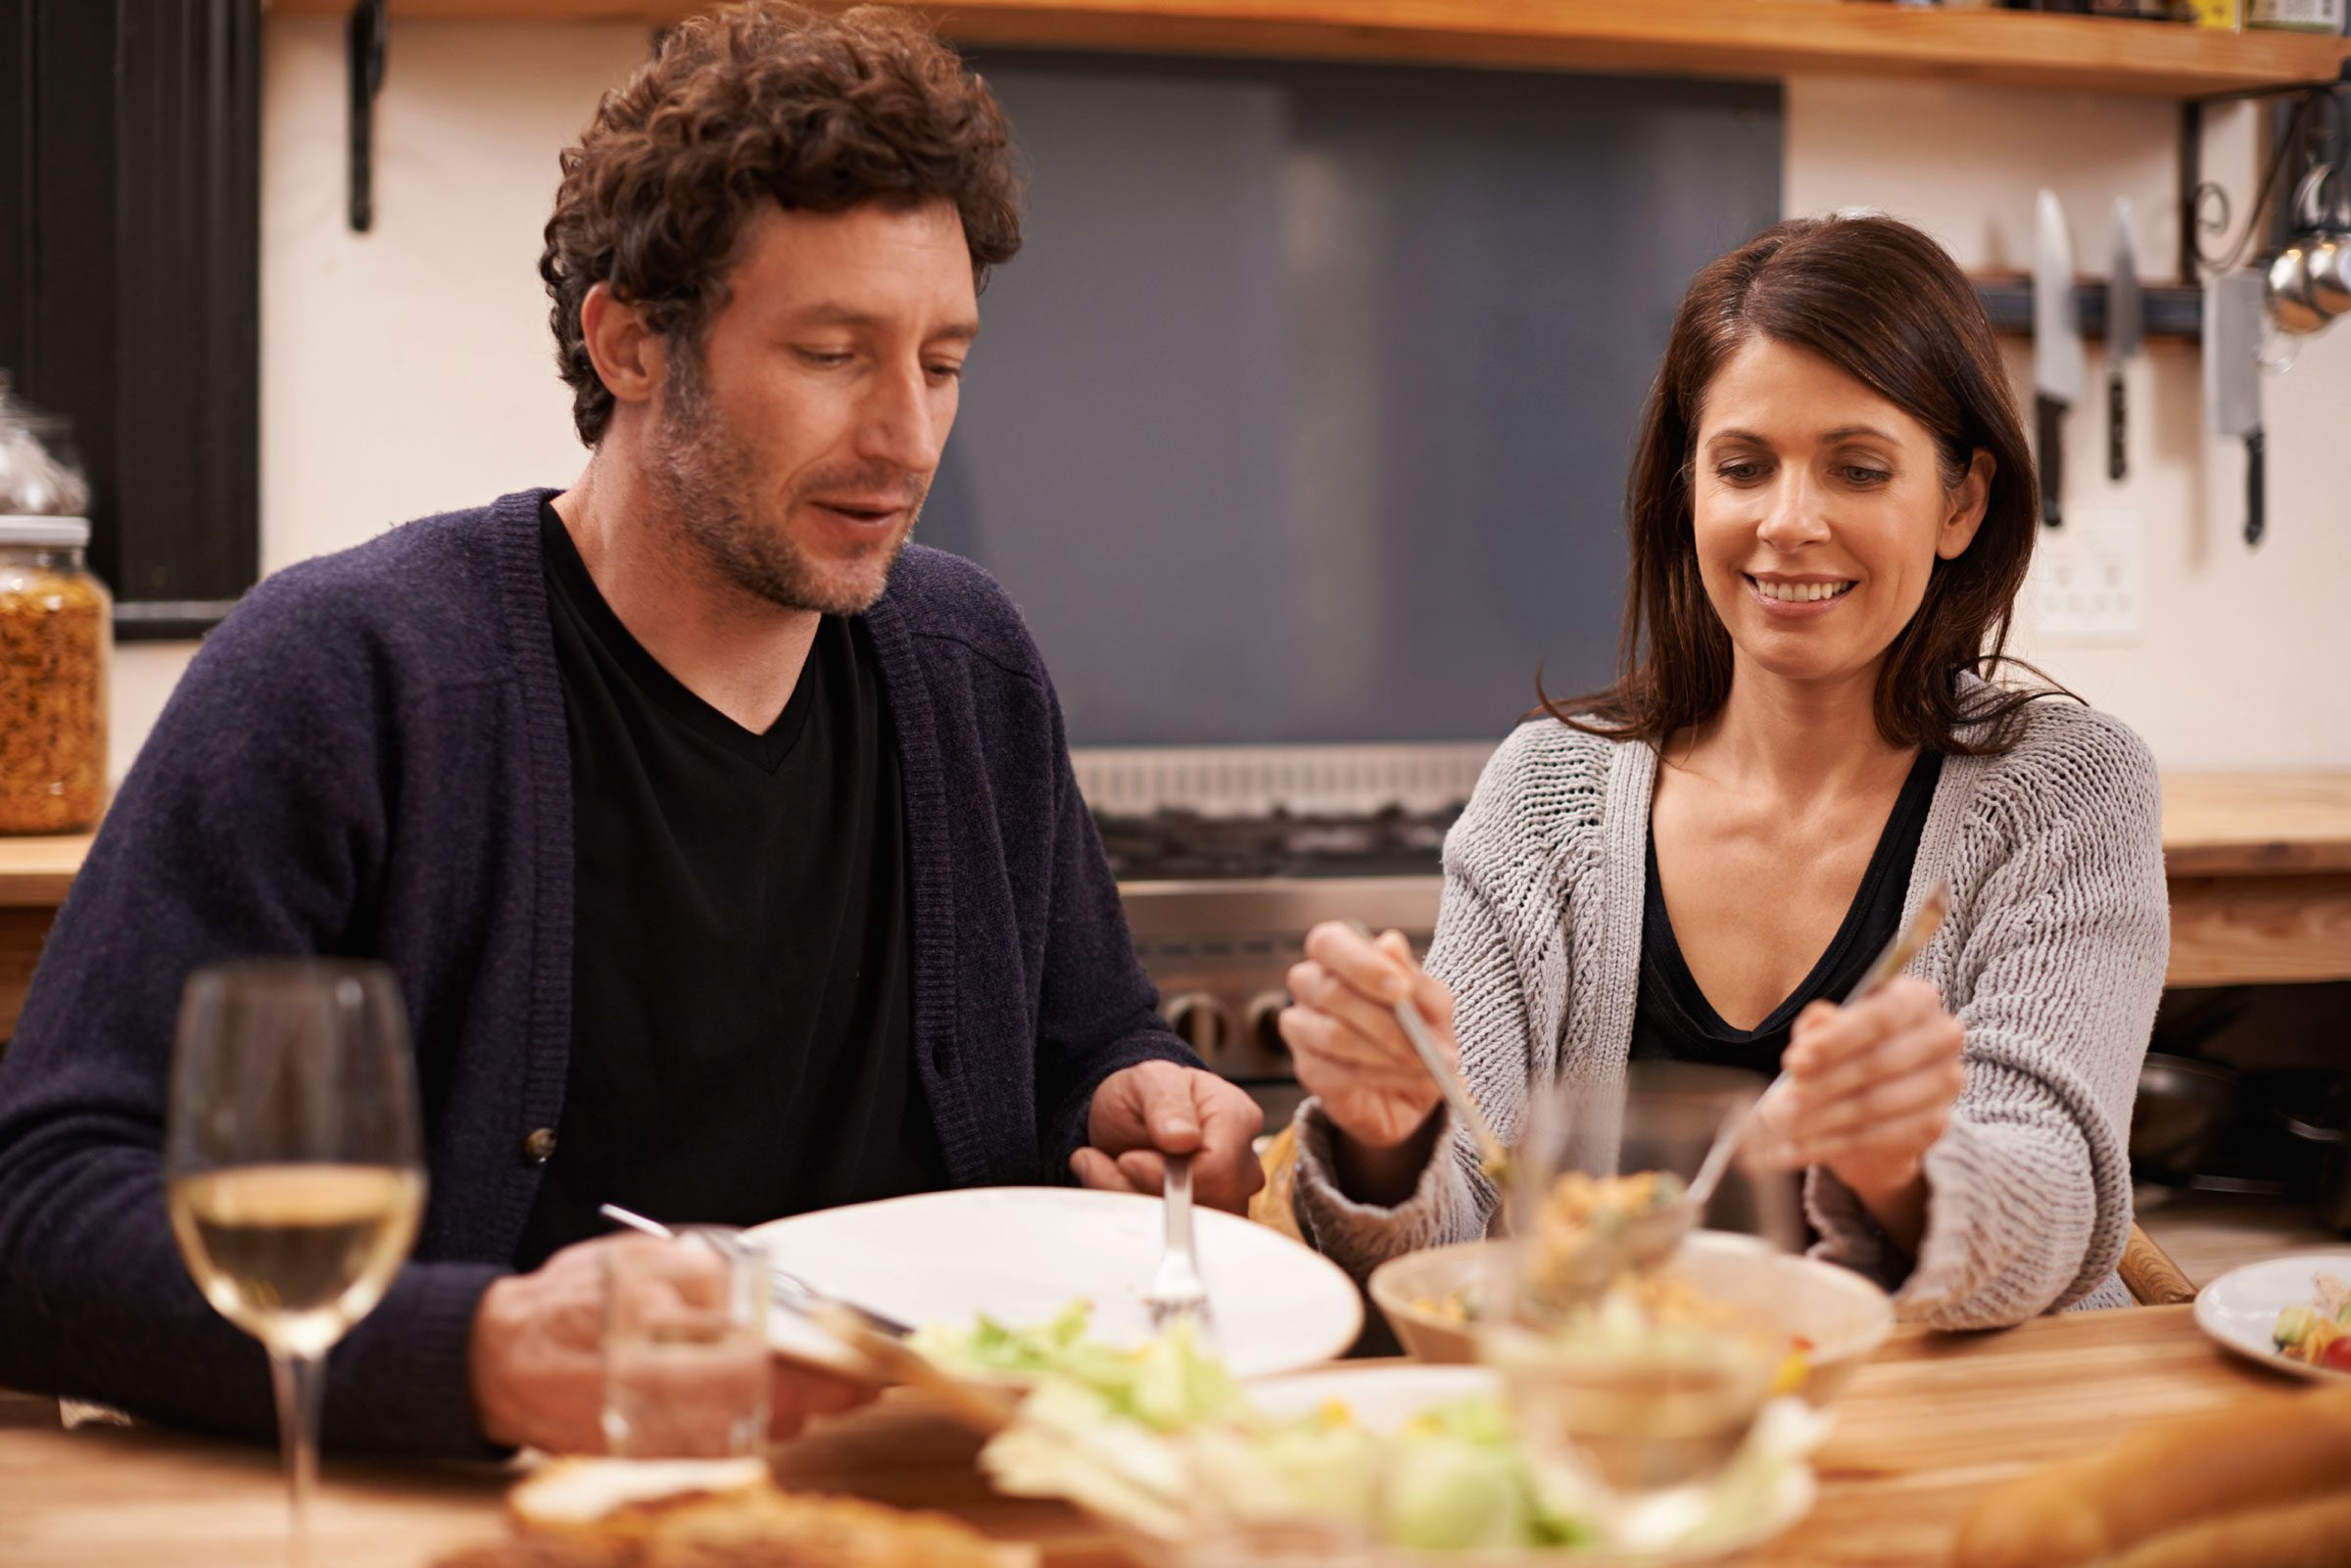 Romantic Things to Do After Dinner Dating Tips